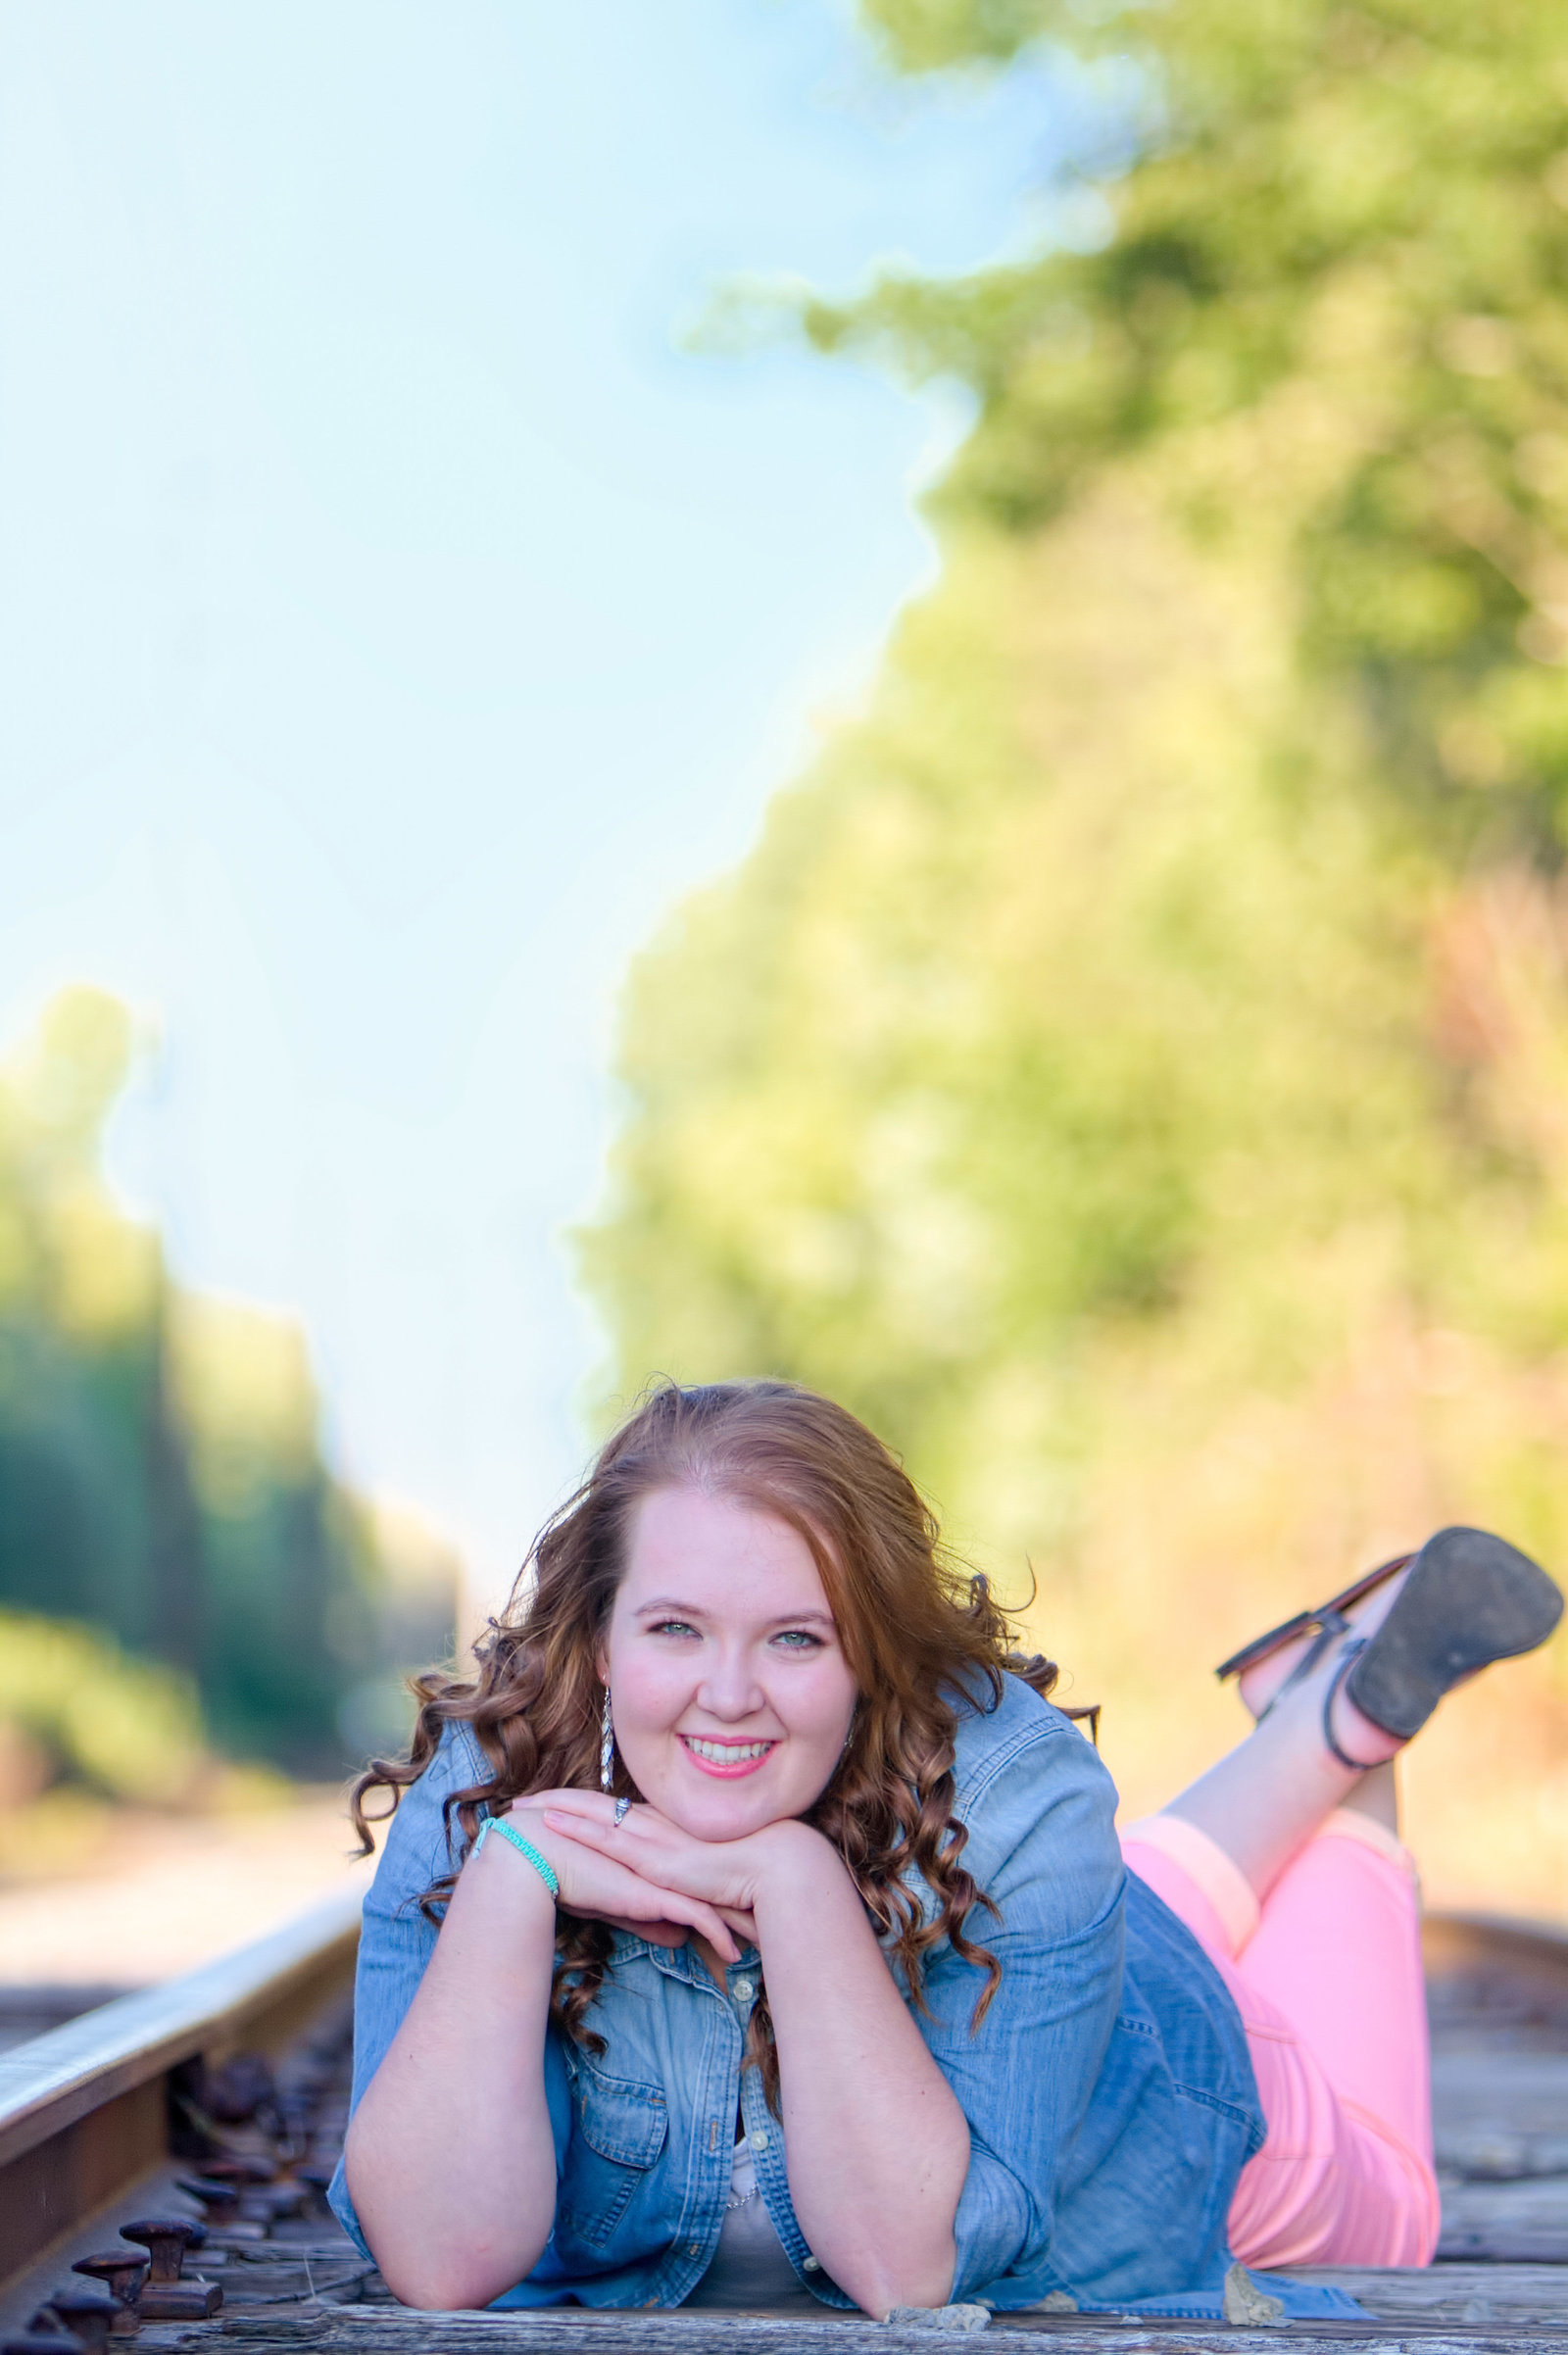 Senior portrait on railroad track